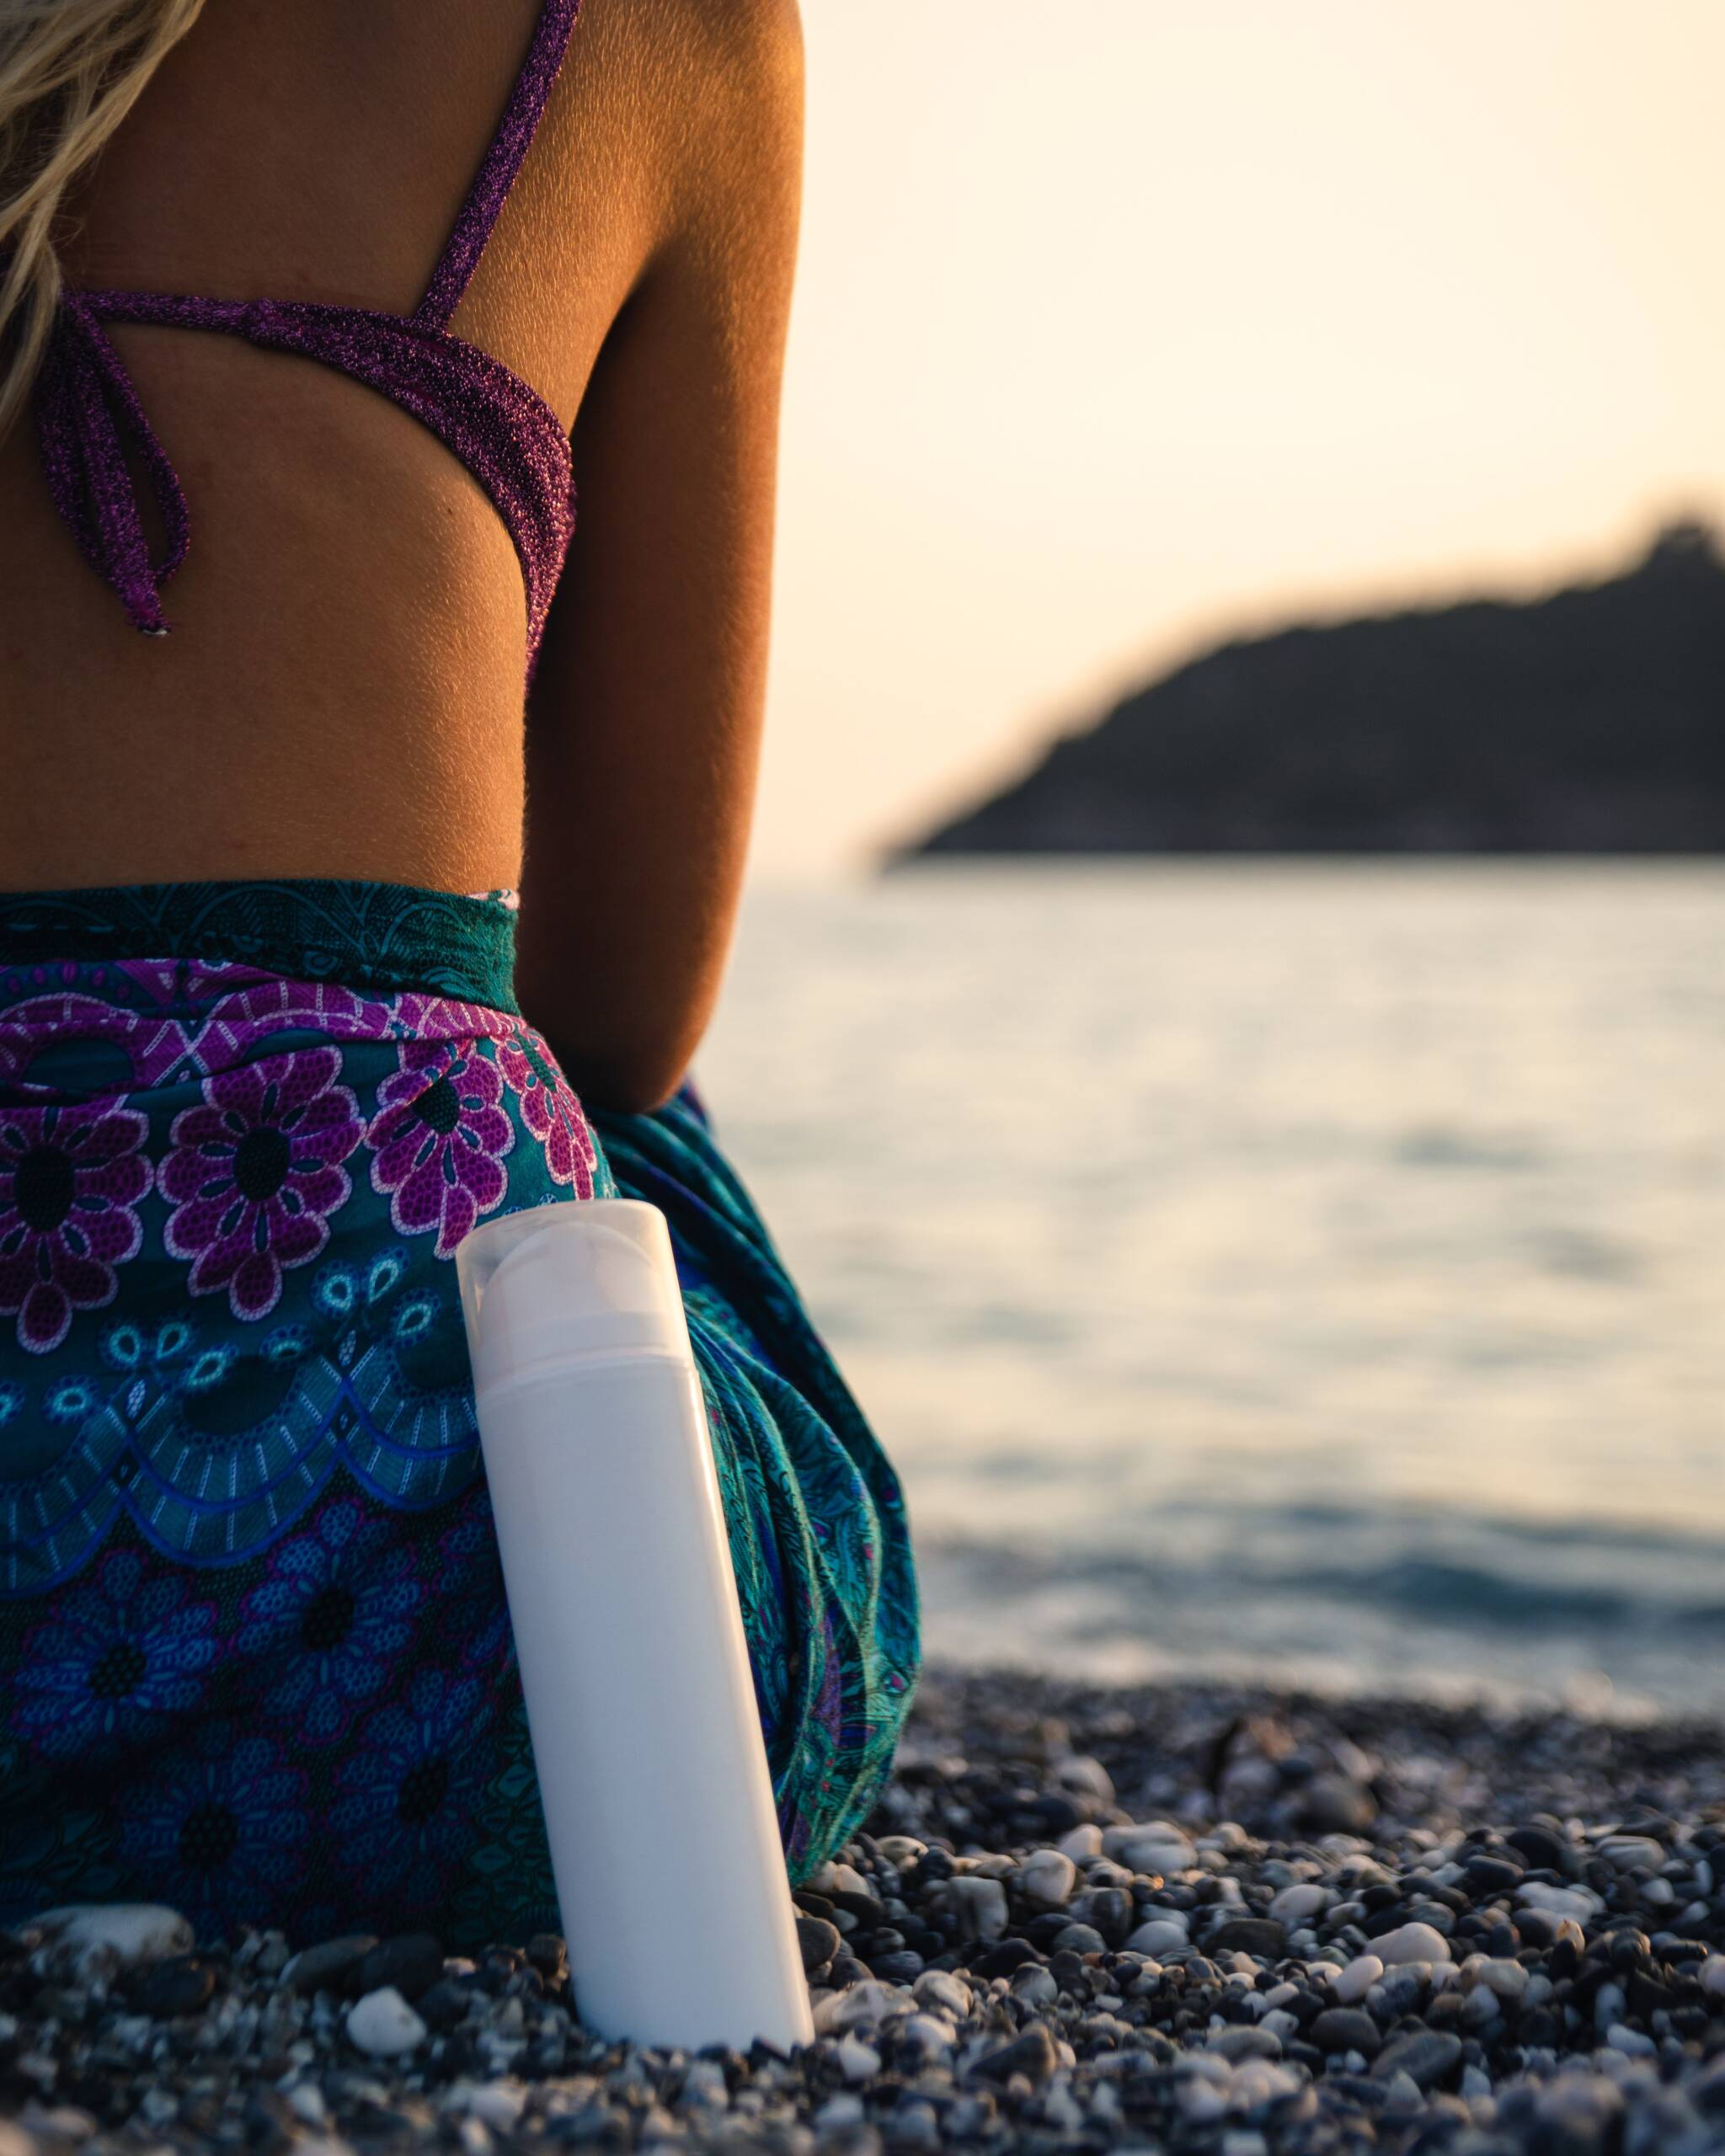 Natural Sunscreen Guide To Keep You Safe This Summer